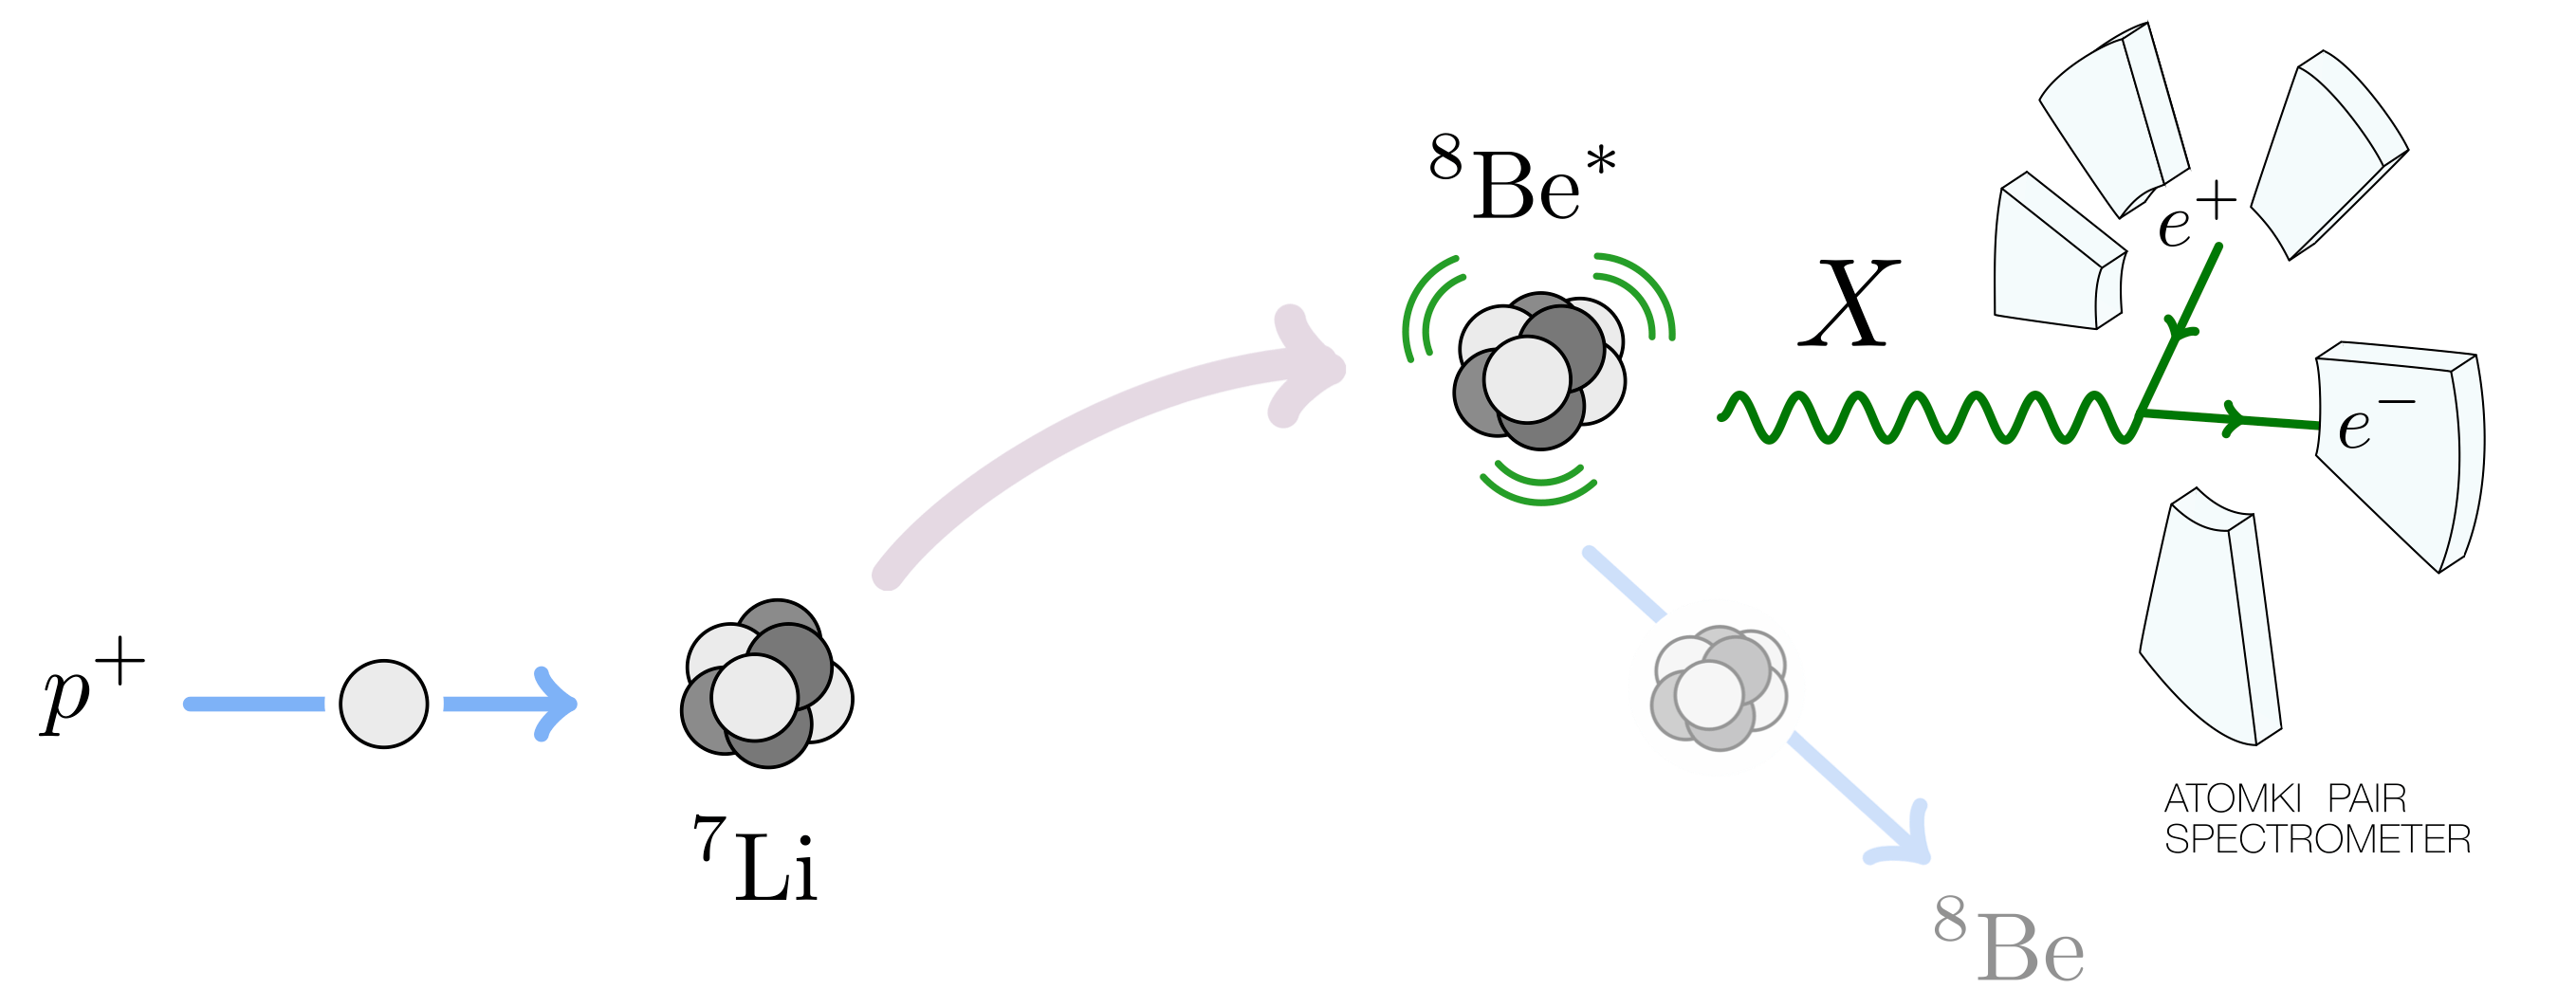 The delirium over beryllium particlebites in summary protons of a specific energy bombard stationary lithium 7 nuclei and excite them to the 1815 mev pooptronica